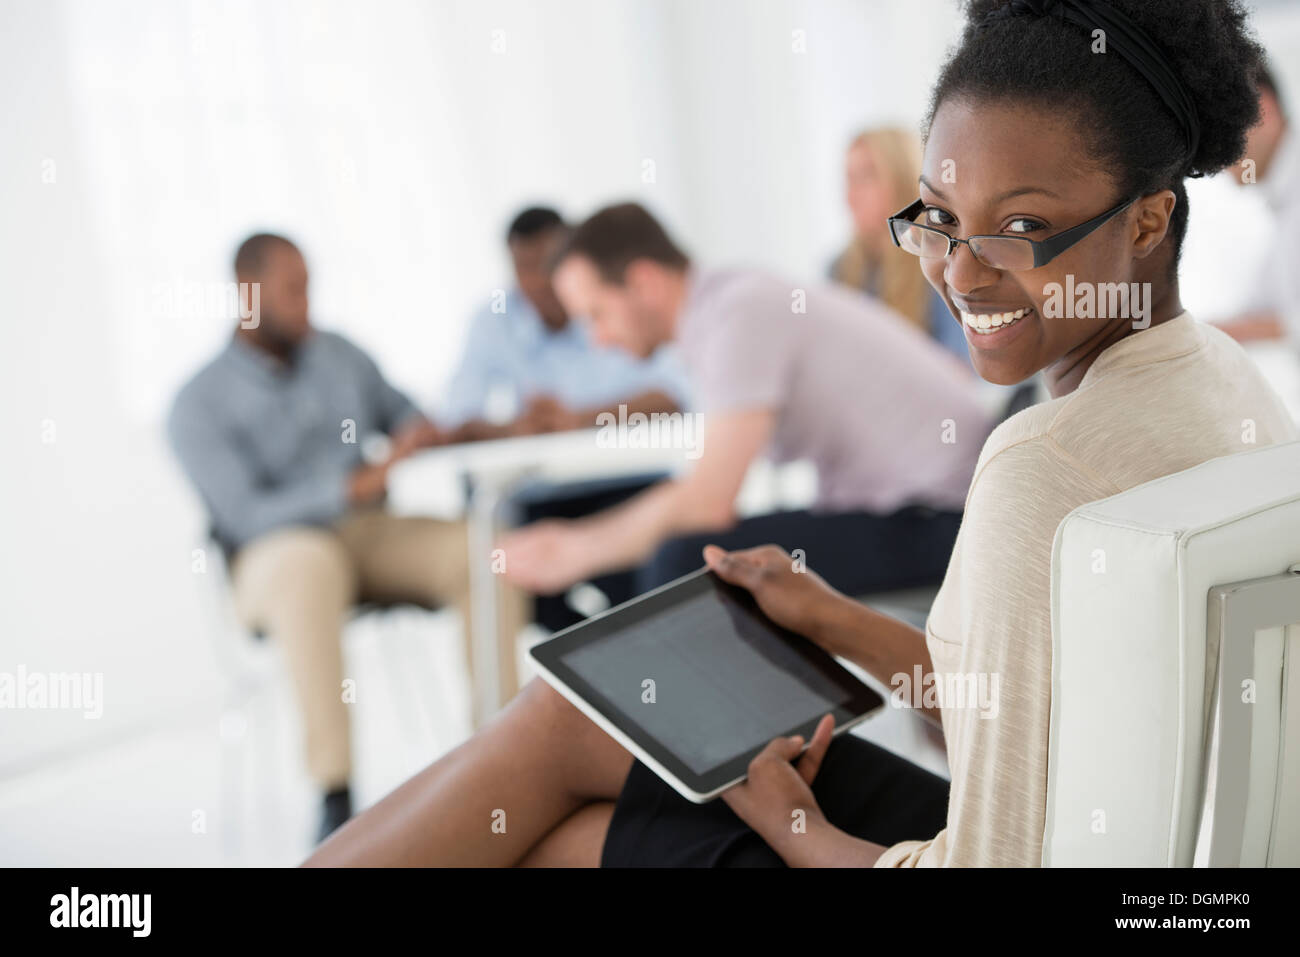 Office interior. Meeting. One person looking over her shoulder and away from the group. Holding a digital tablet. - Stock Image